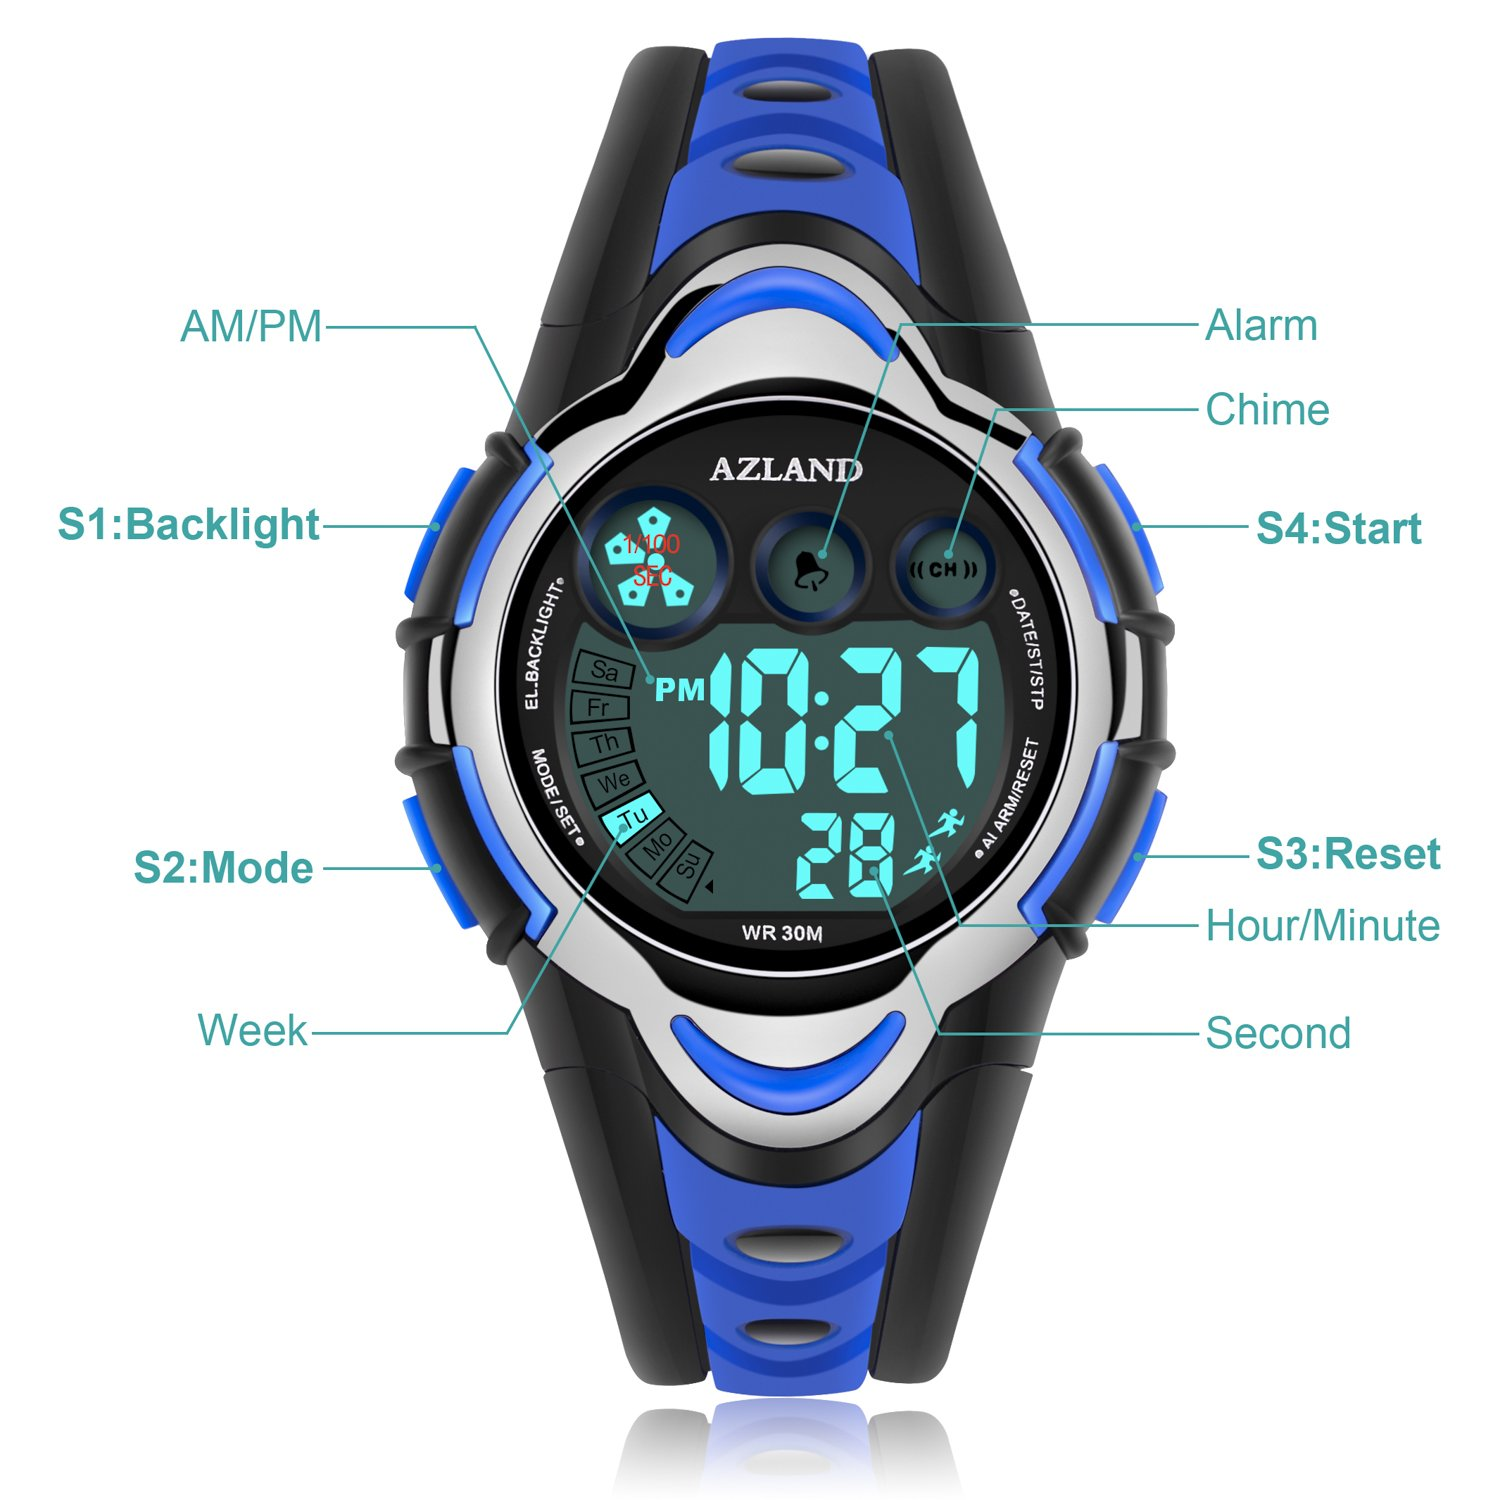 AZLAND Waterproof Swimming Led Digital Sports Watches for Children Kids Girls Boys,Rubber Strap,Blue by AZLAND (Image #6)